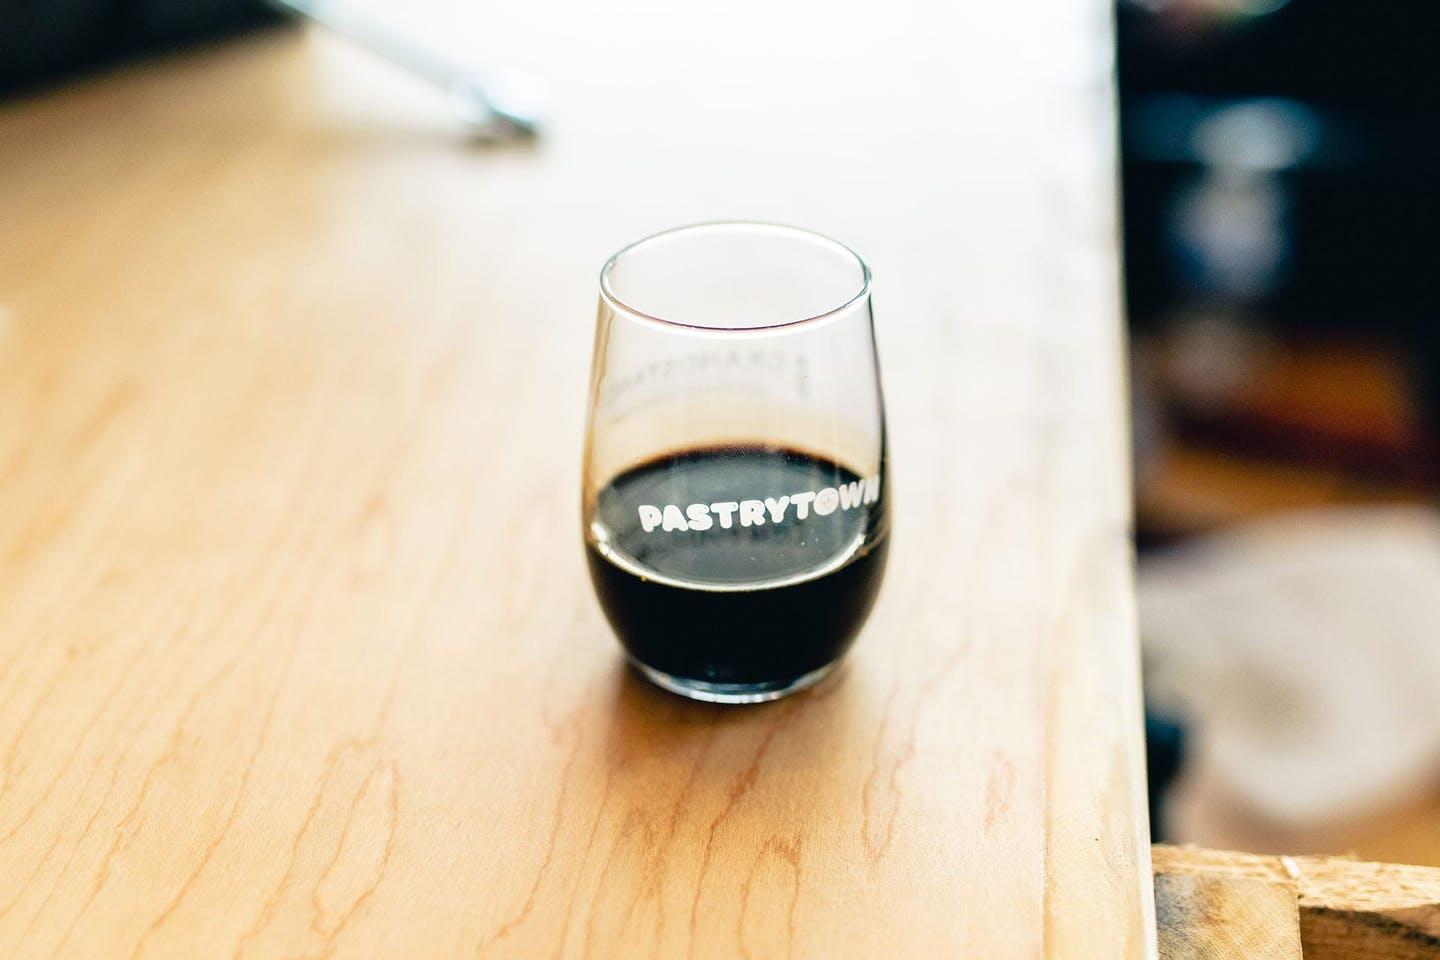 2019 Pastrytown Other Half 11